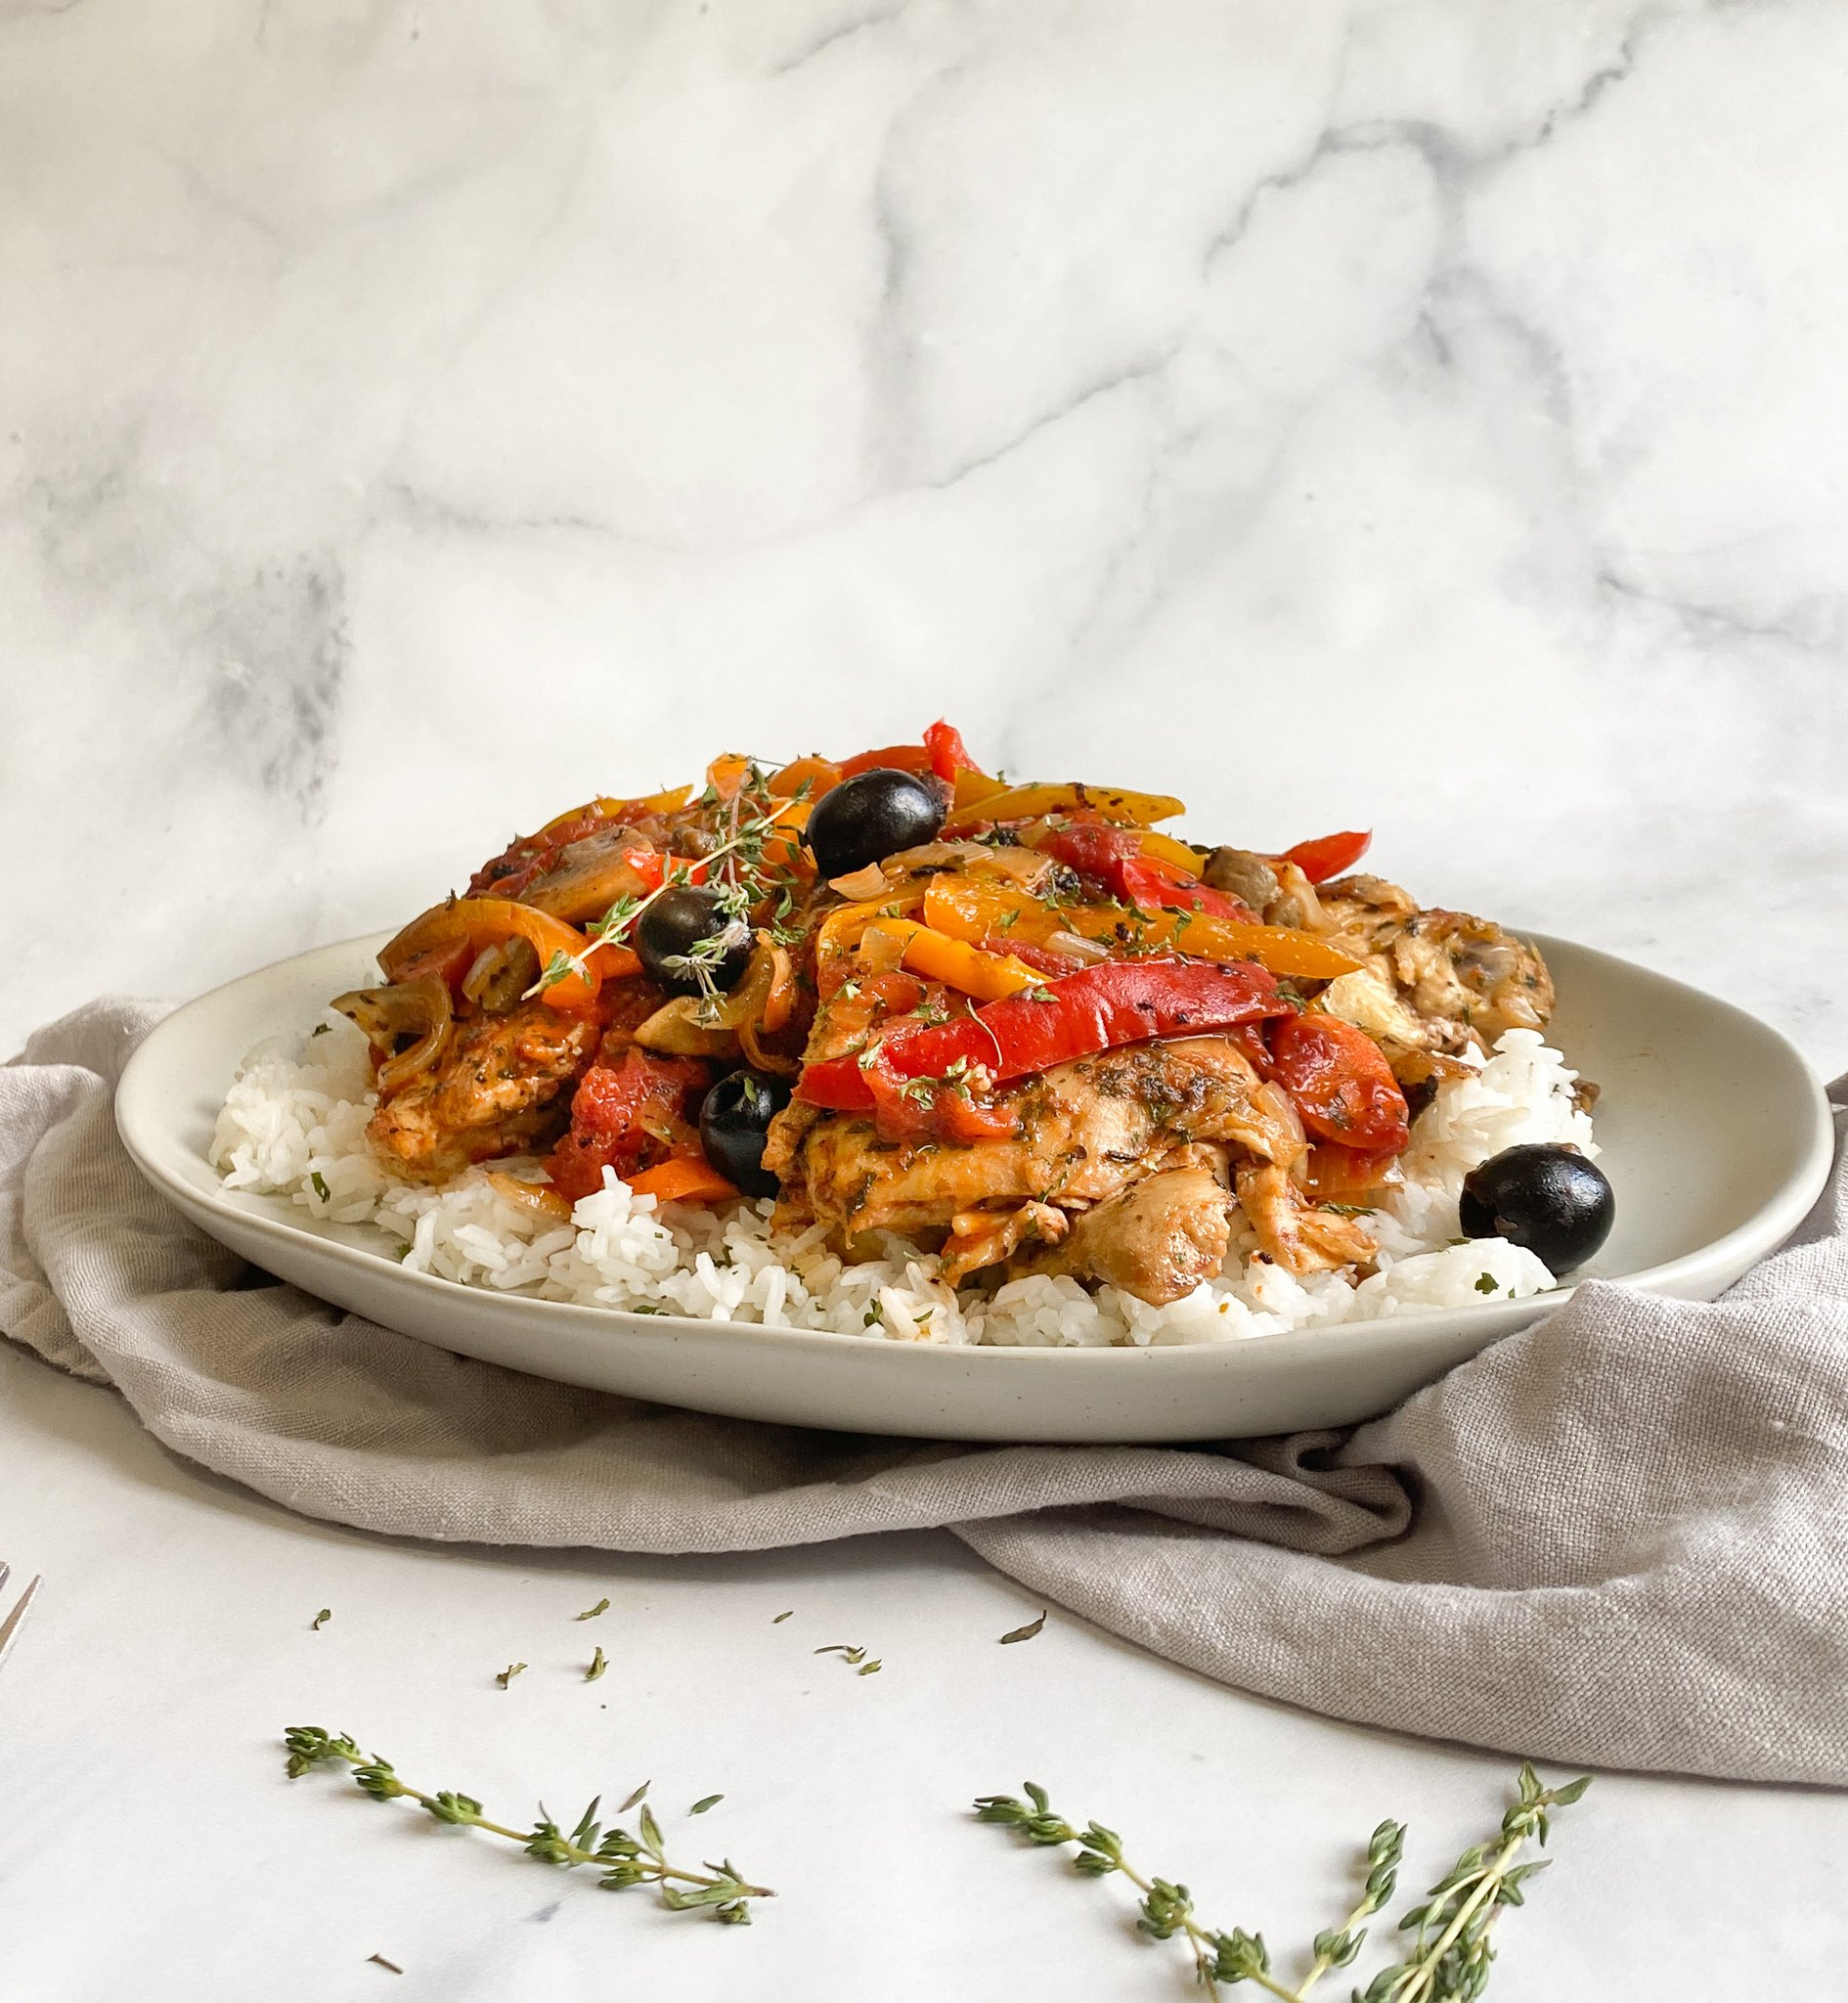 Classic chicken cacciatore sitting on top of a grey platter over a bed of jasmine rice.